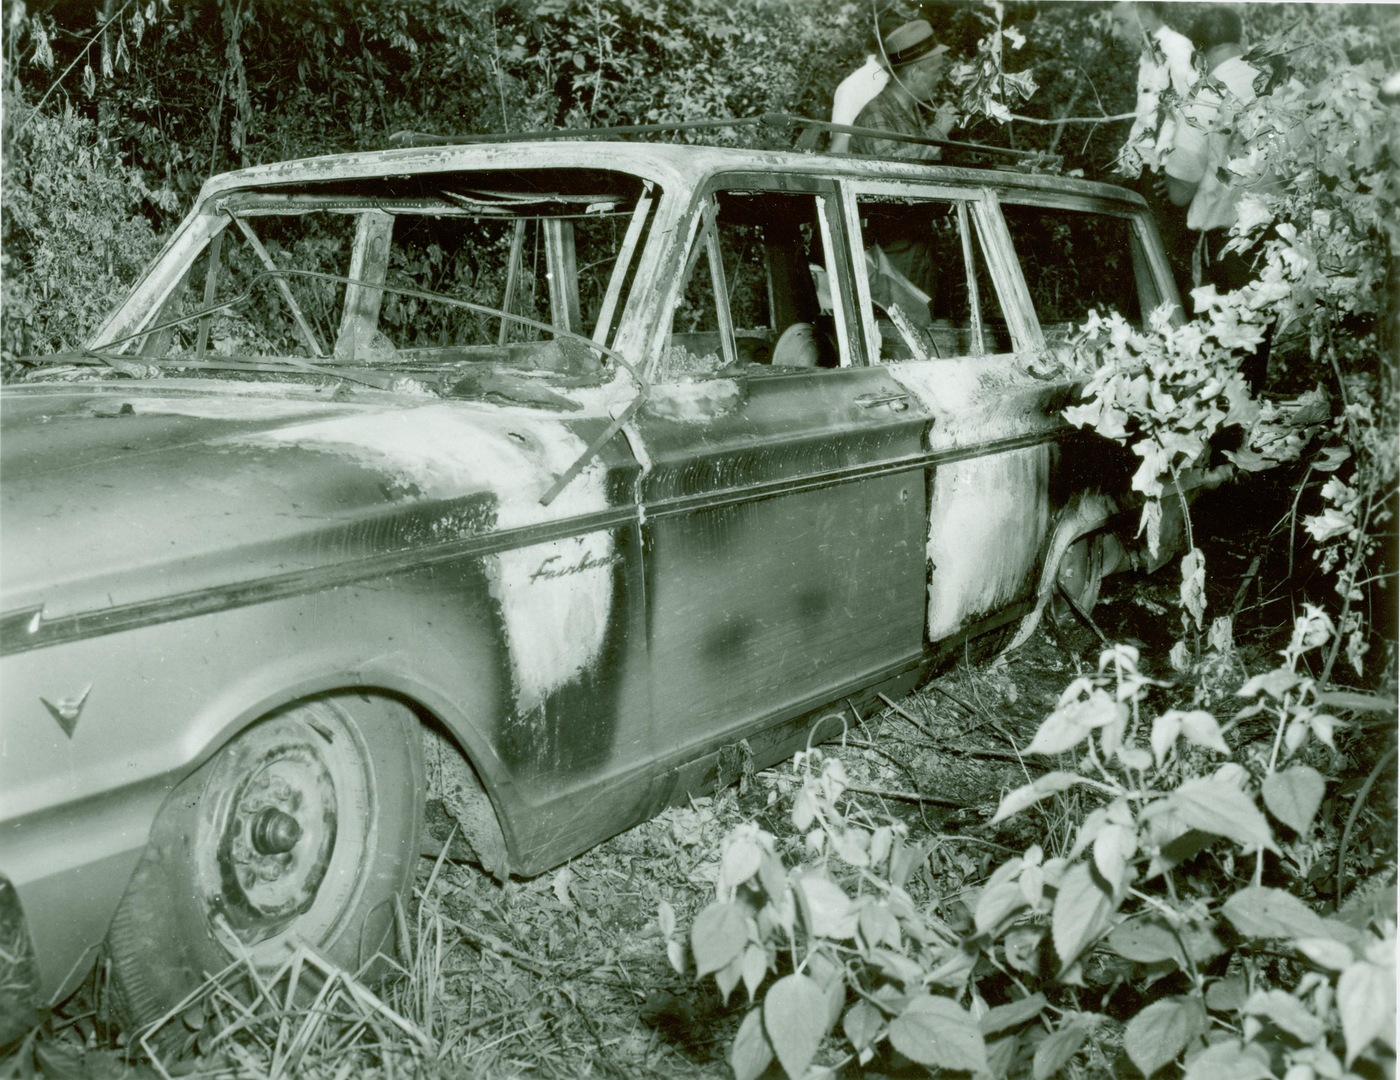 The Ford station wagon driven by civil rights activists Michael Schwerner, James Chaney, and Andrew Goodman that was discovered on June 23, 1964 following their disappearance. Its charred condition resulted in agents naming the case MIBURN, short for Mississippi Burning.